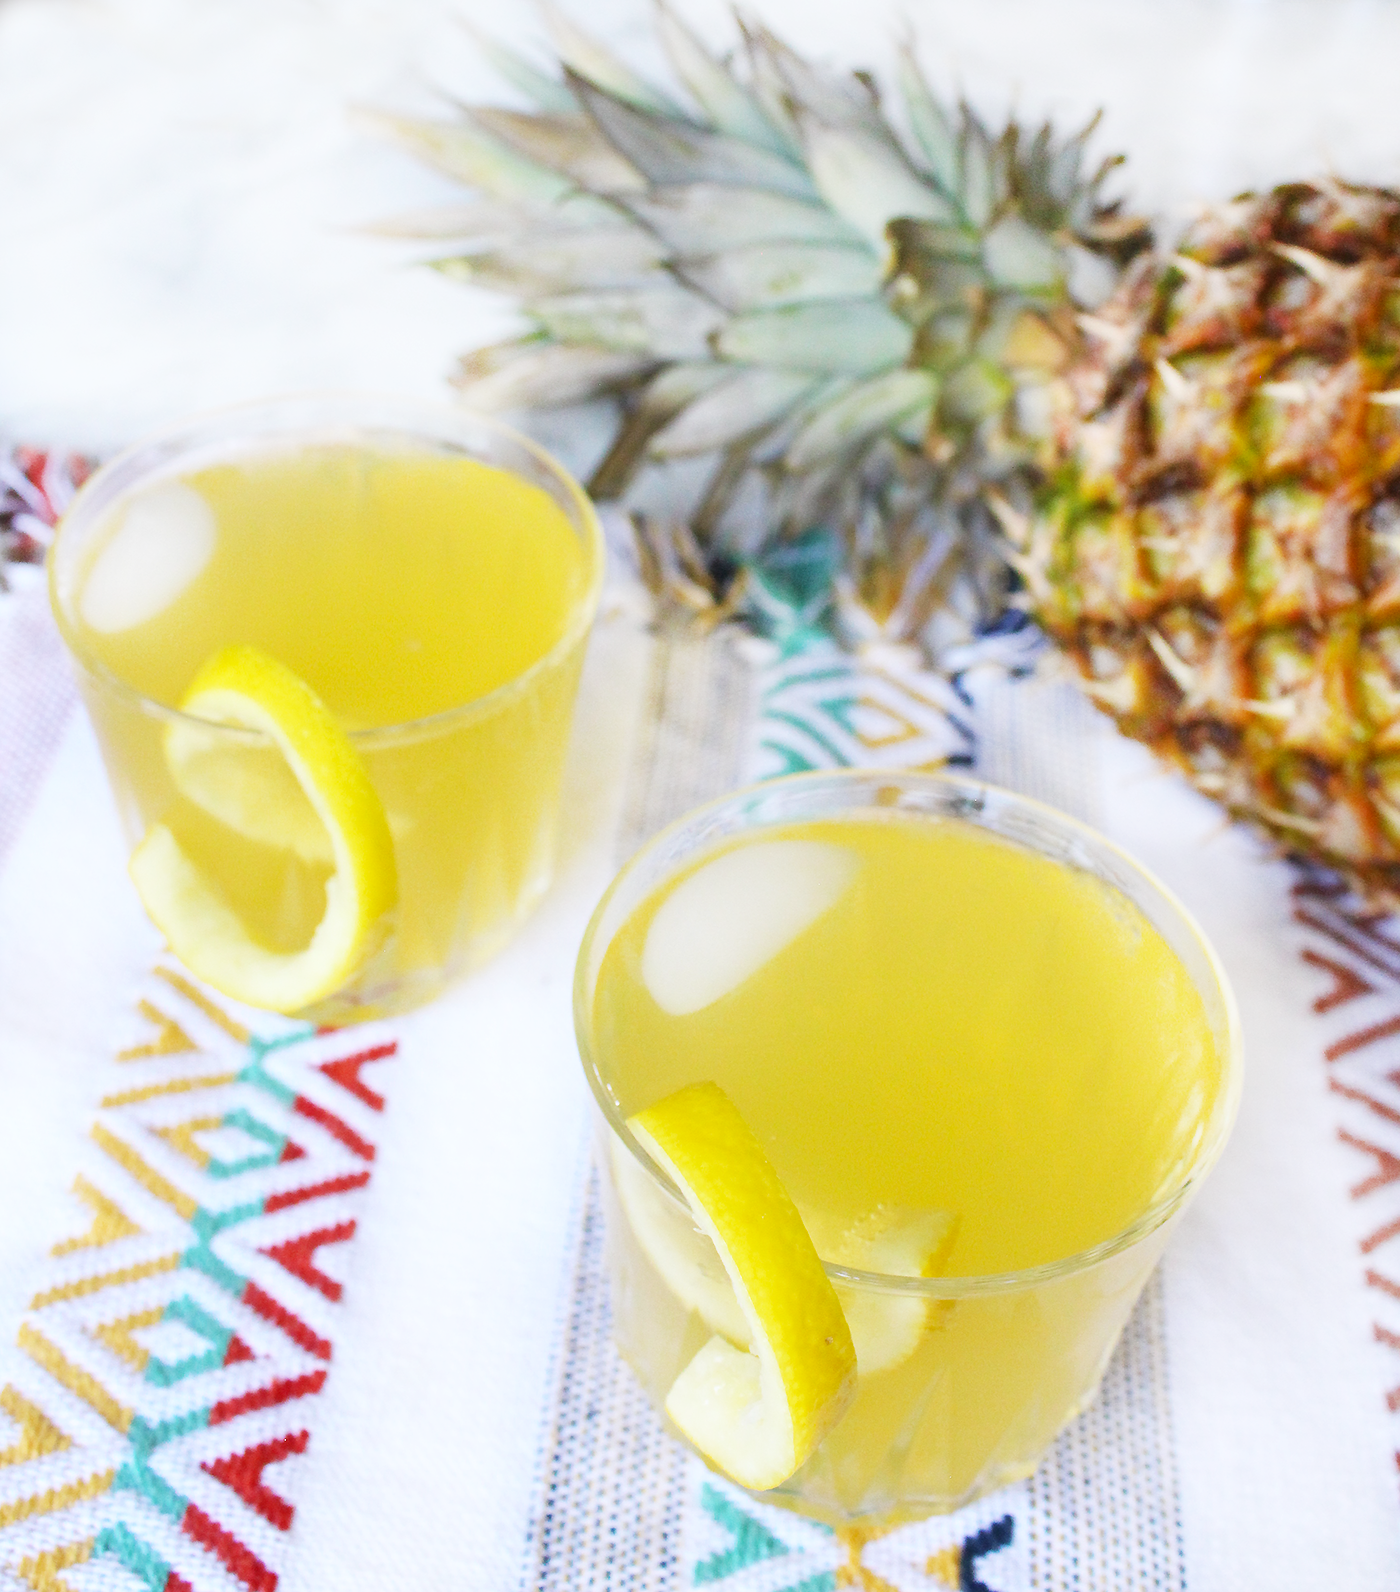 Skinny Coconut Pineapple Sparkling Cocktail Recipe